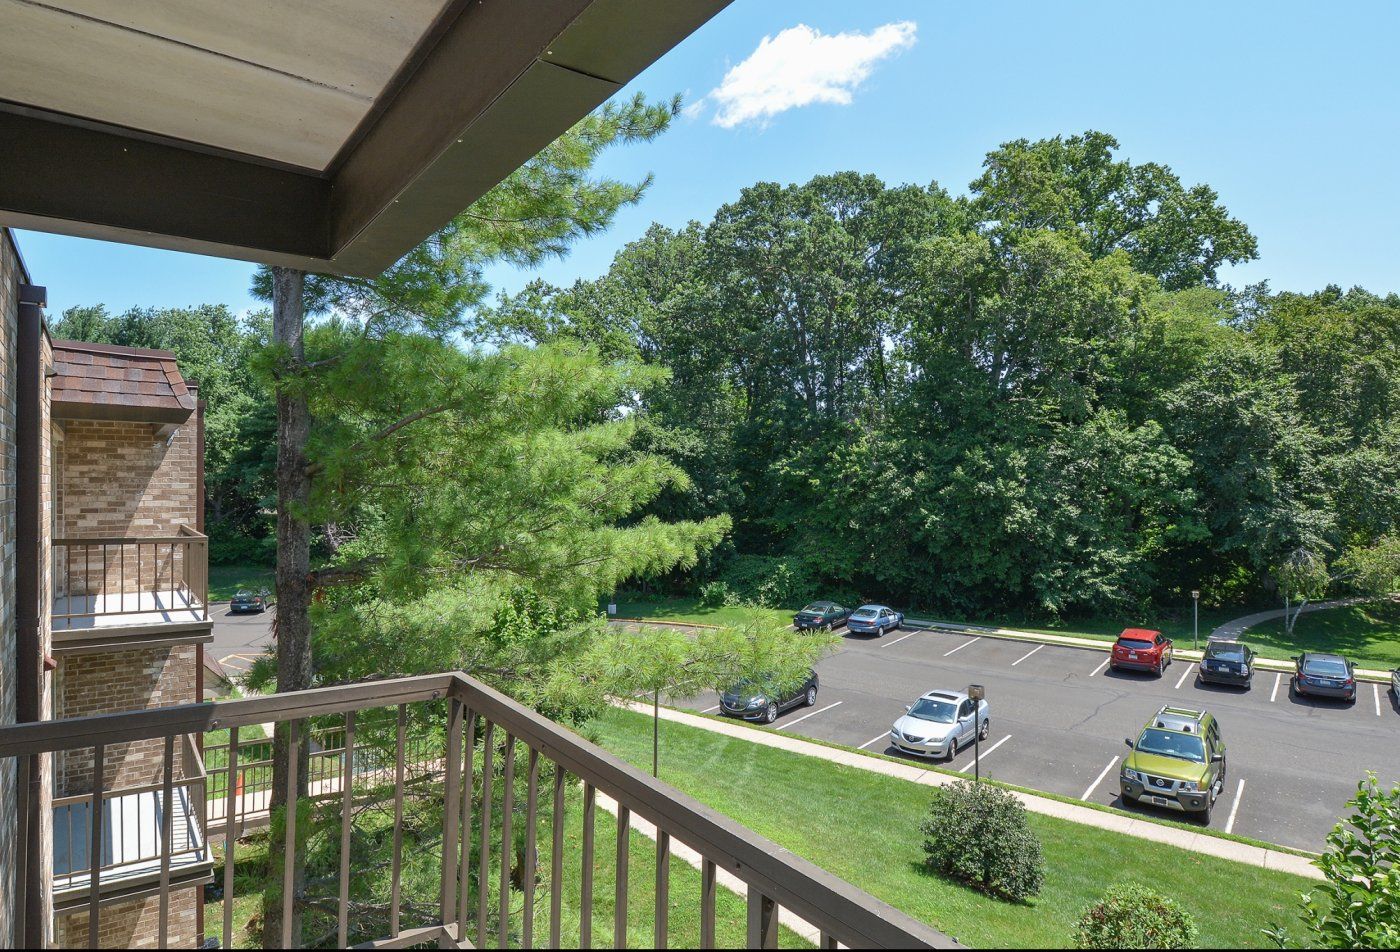 Spacious Apartment Balcony | Langhorne PA Apartments For Rent | Summit Trace Apartments